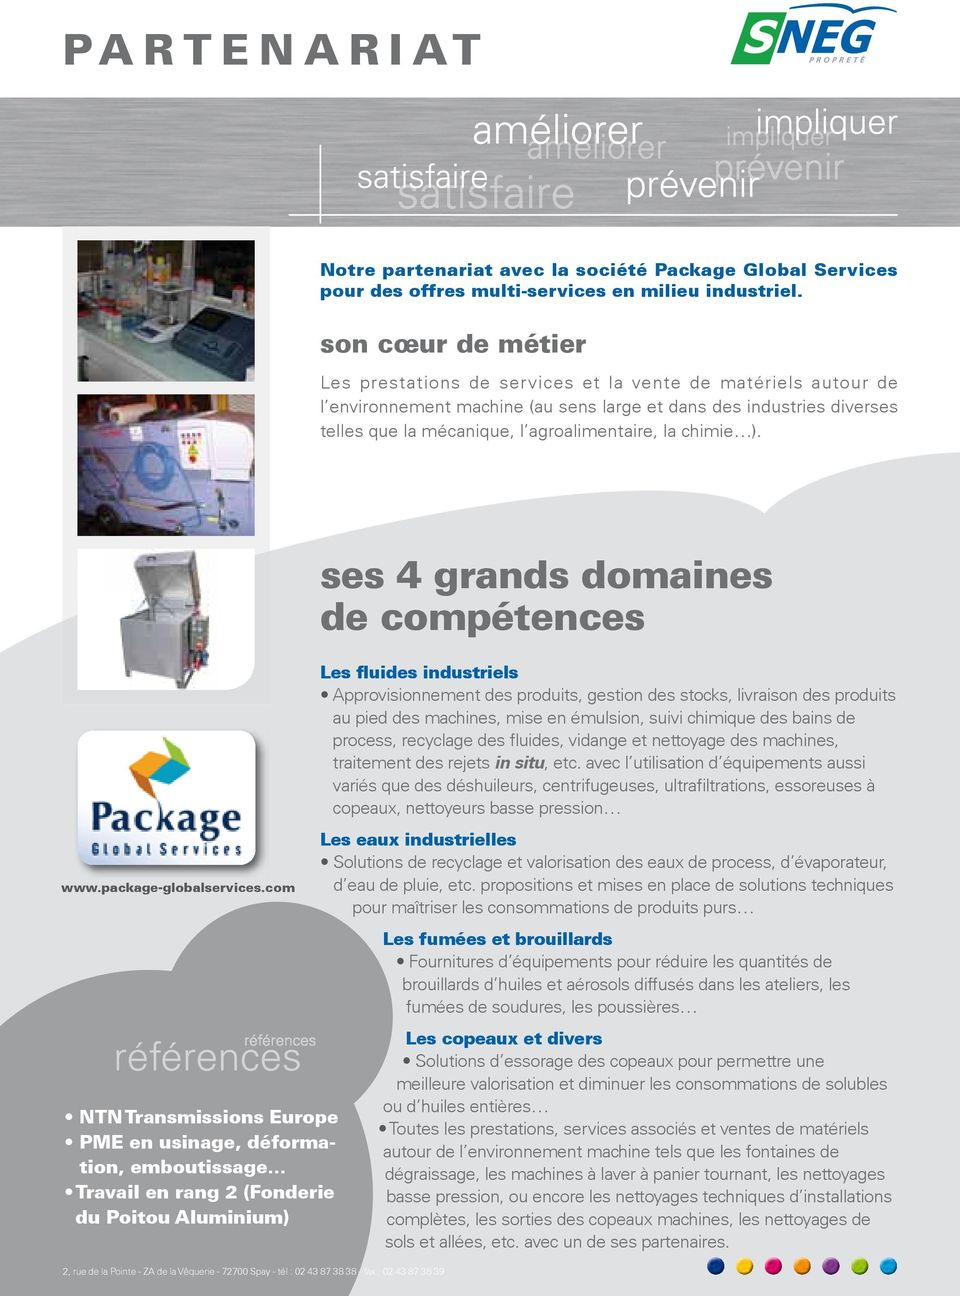 chimie ). www.package-globalservices.com NTN Transmissions Europe PME en usinage, déformation, emboutissage.